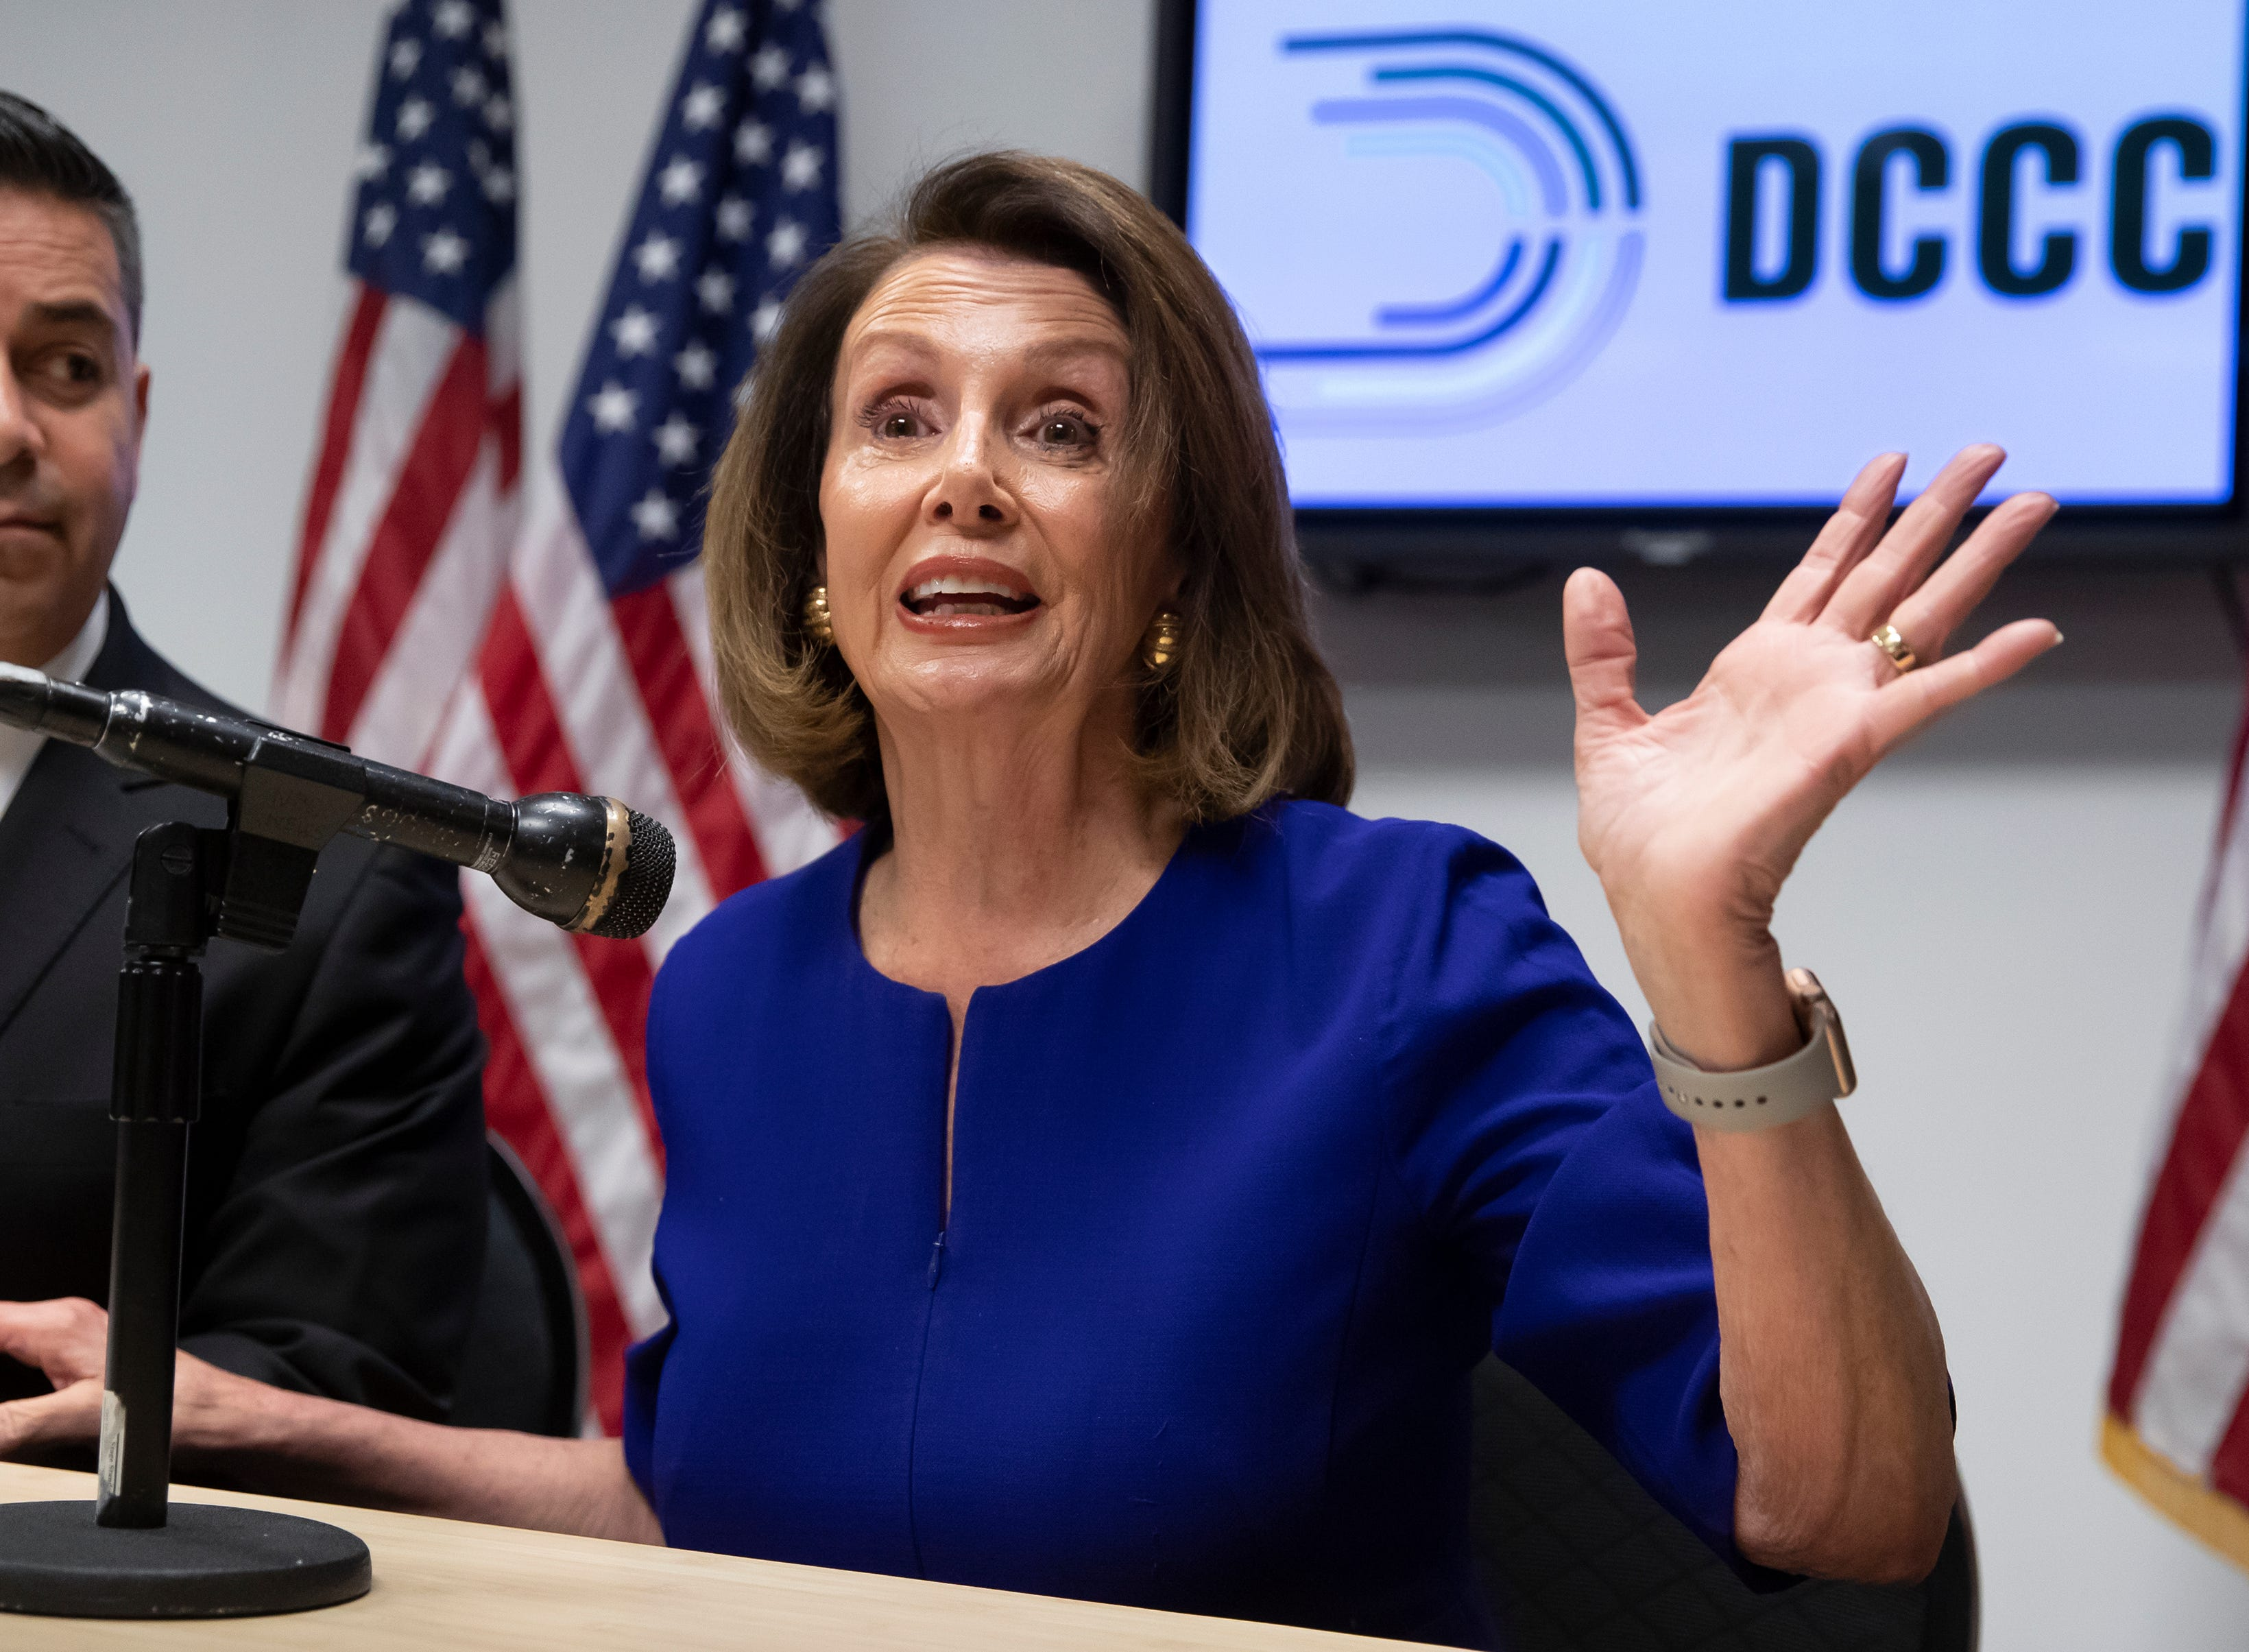 Nancy Pelosi seemed pretty confident of Democratic victory on Tuesday.